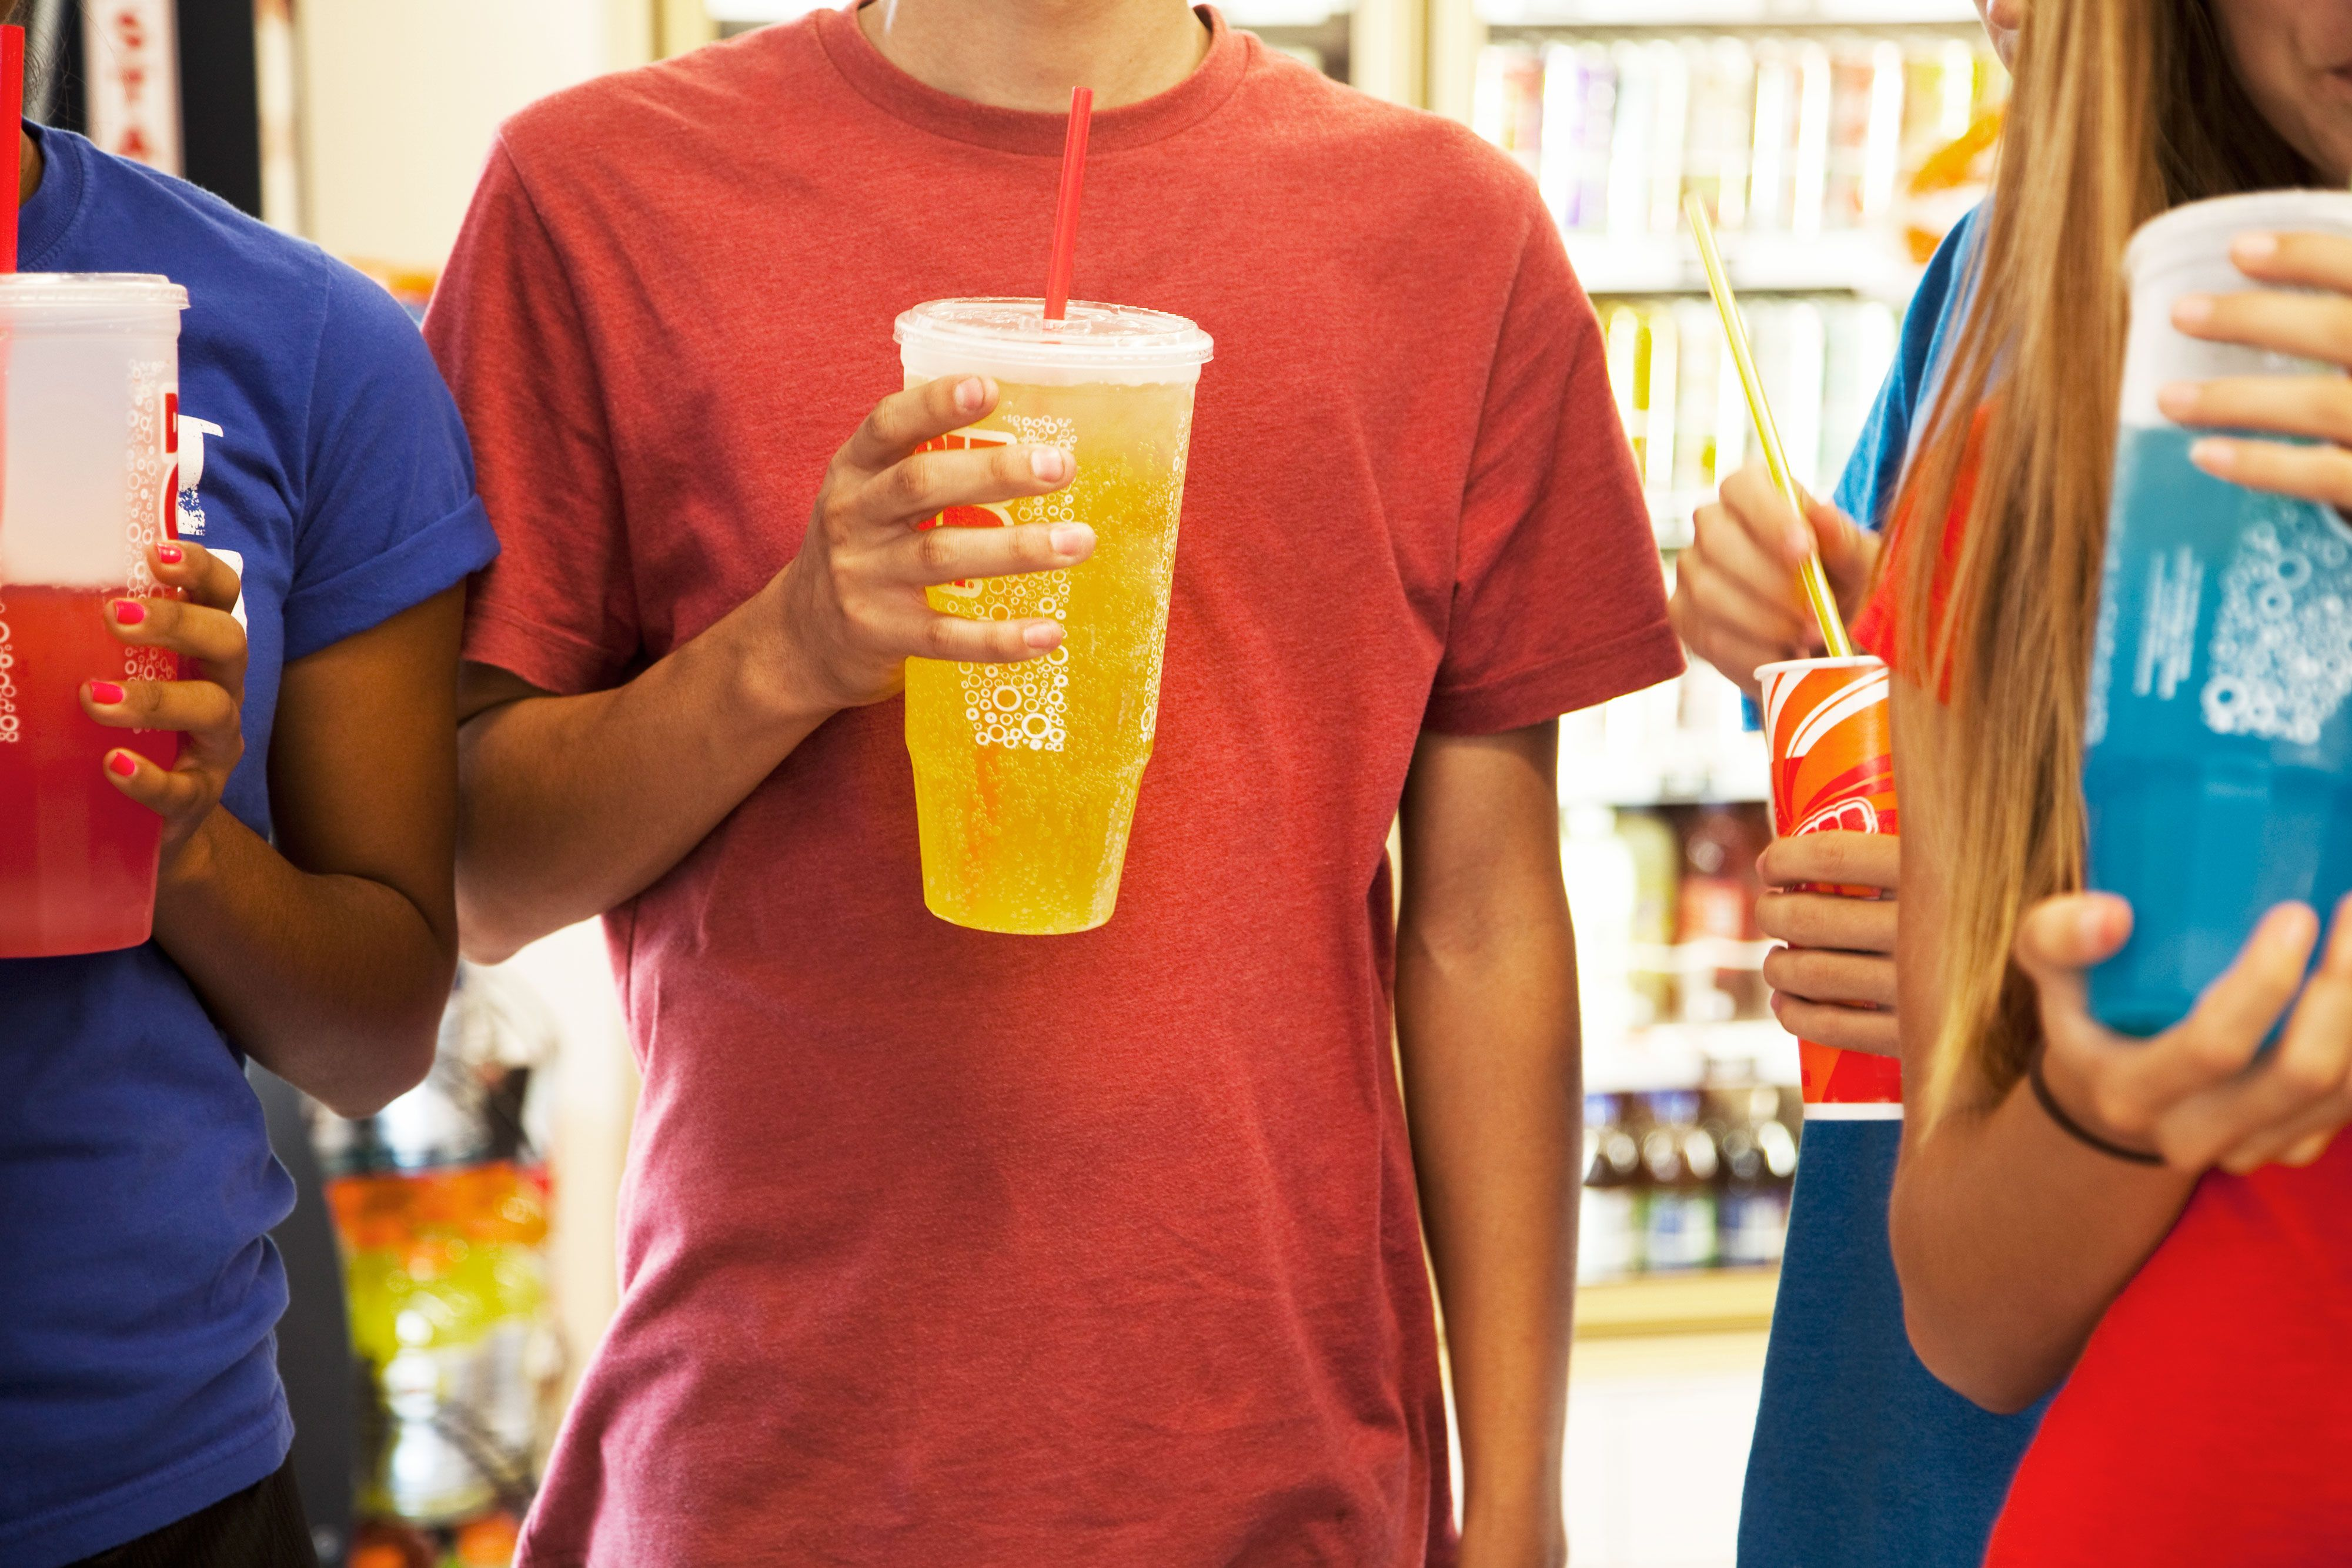 What to Know About Mike Bloomberg's Soda Ban in NYC